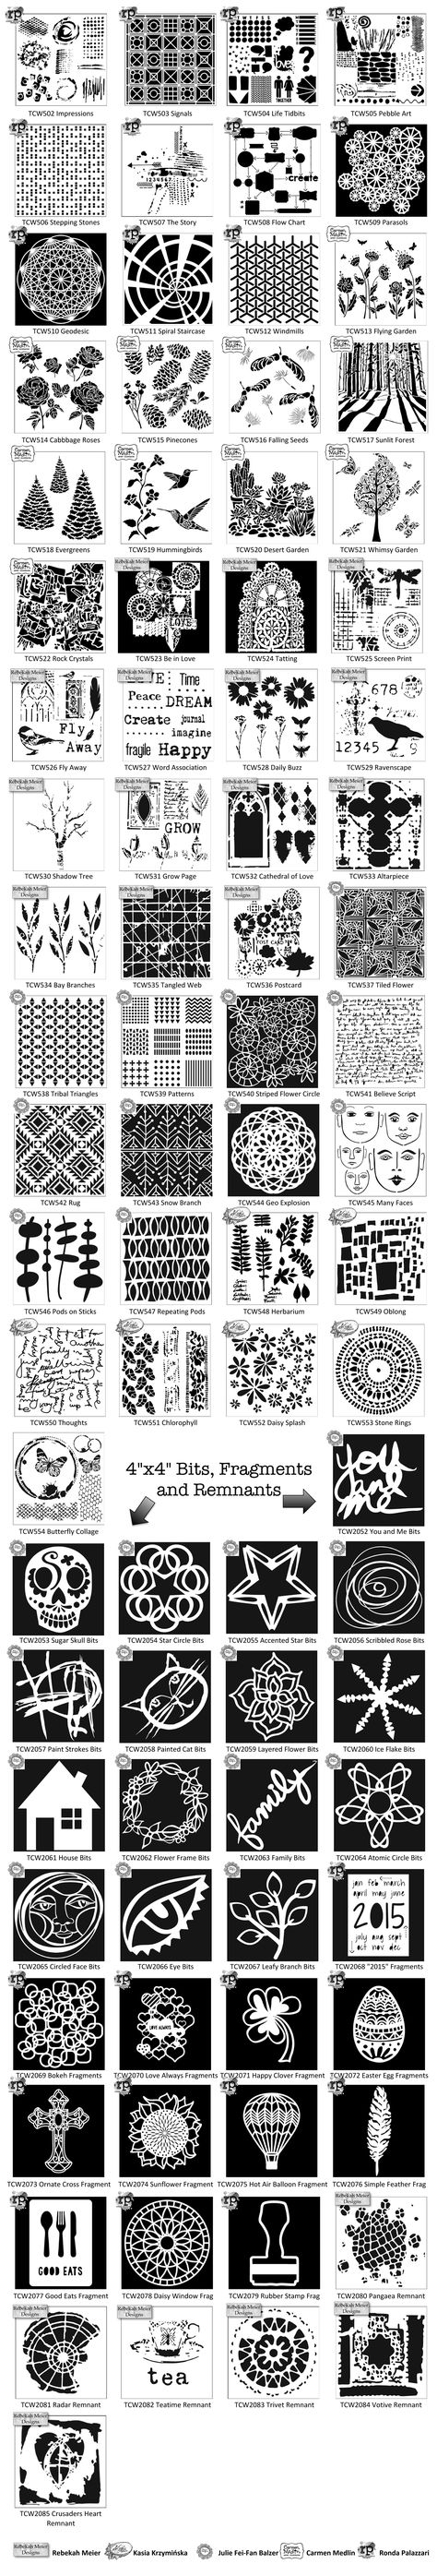 Pin by Lunov on Home decor | Pinterest | Stenciling, Campaign and ...